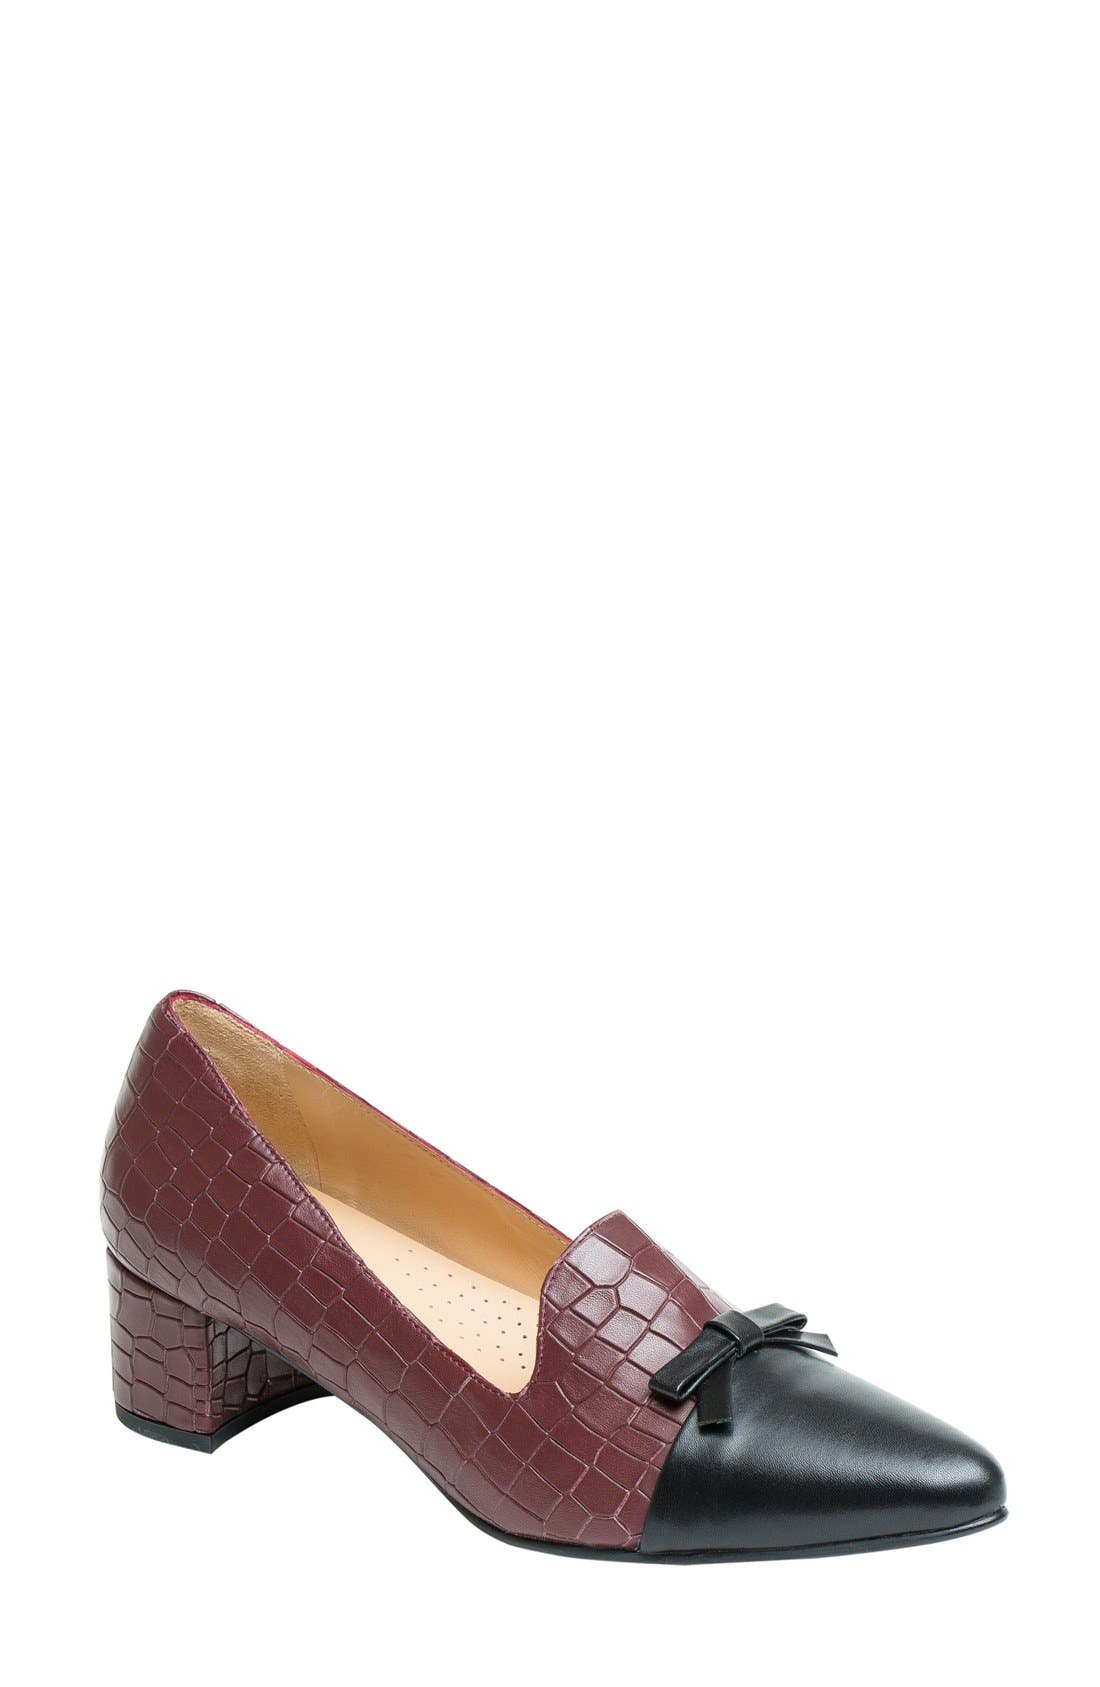 Paloma Loafer Pump,                             Main thumbnail 1, color,                             Burgundy Leather